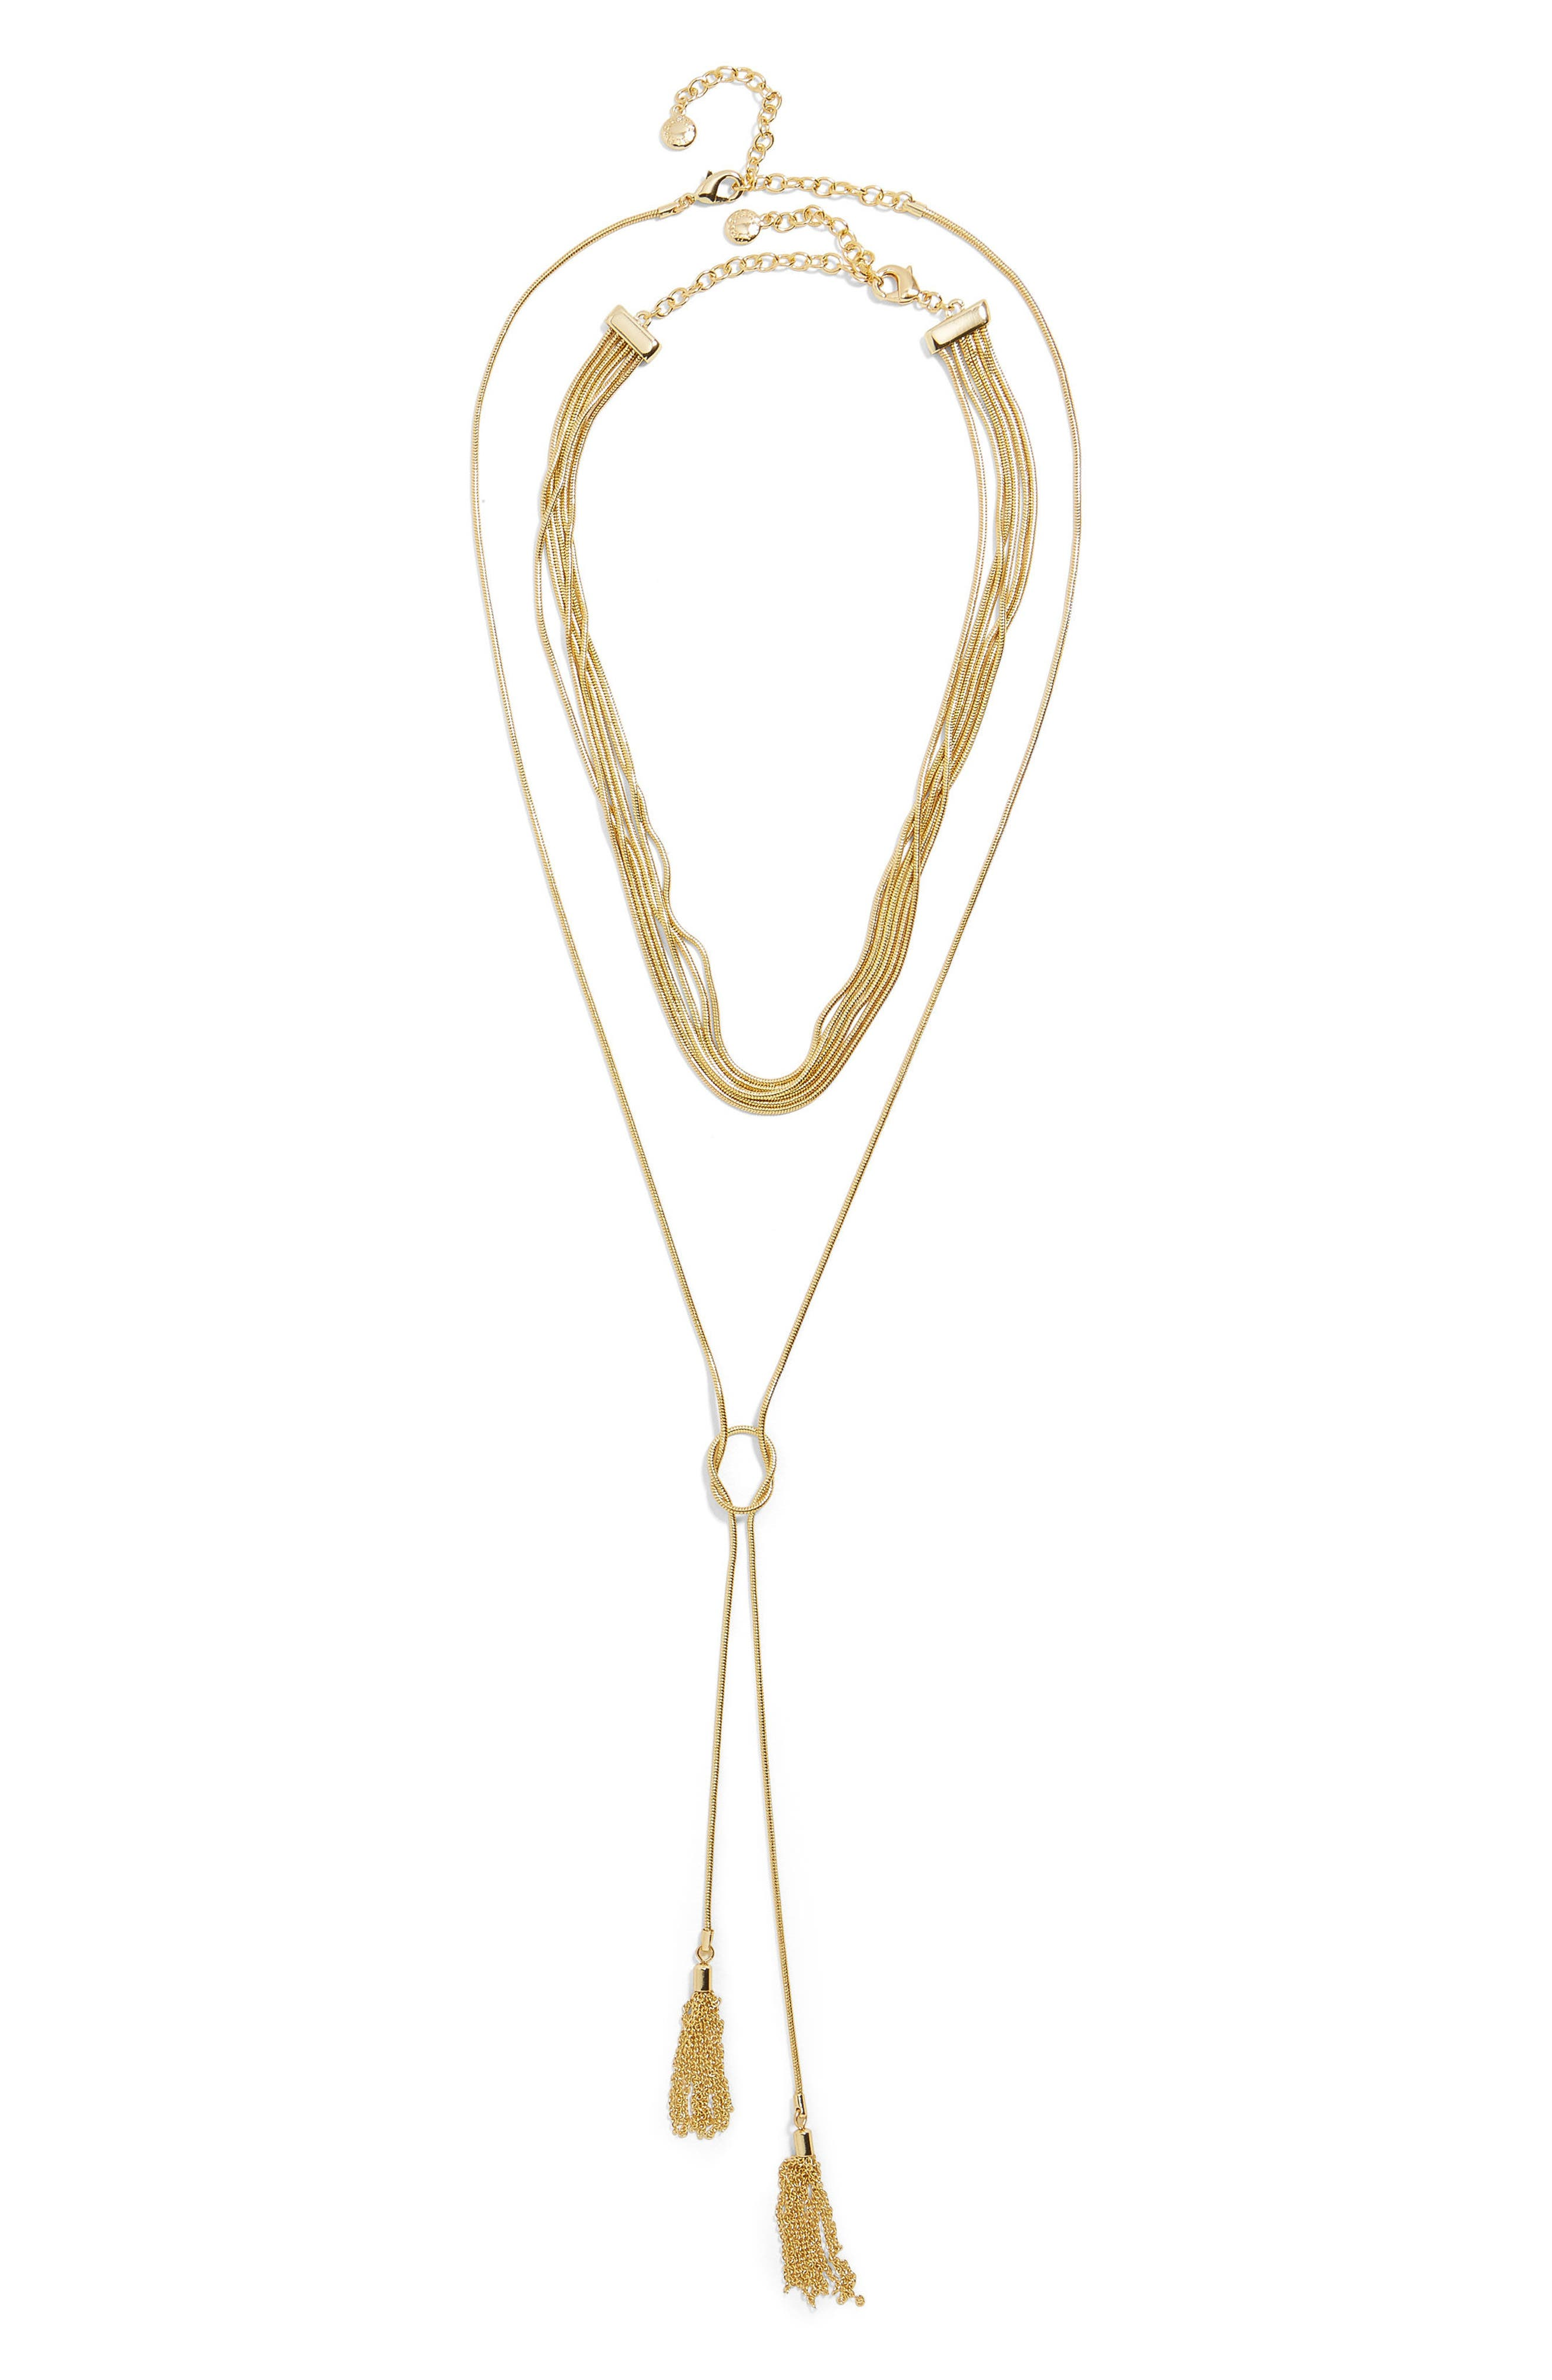 Delania Set of 2 Layered & Lariat Necklaces,                             Alternate thumbnail 2, color,                             GOLD